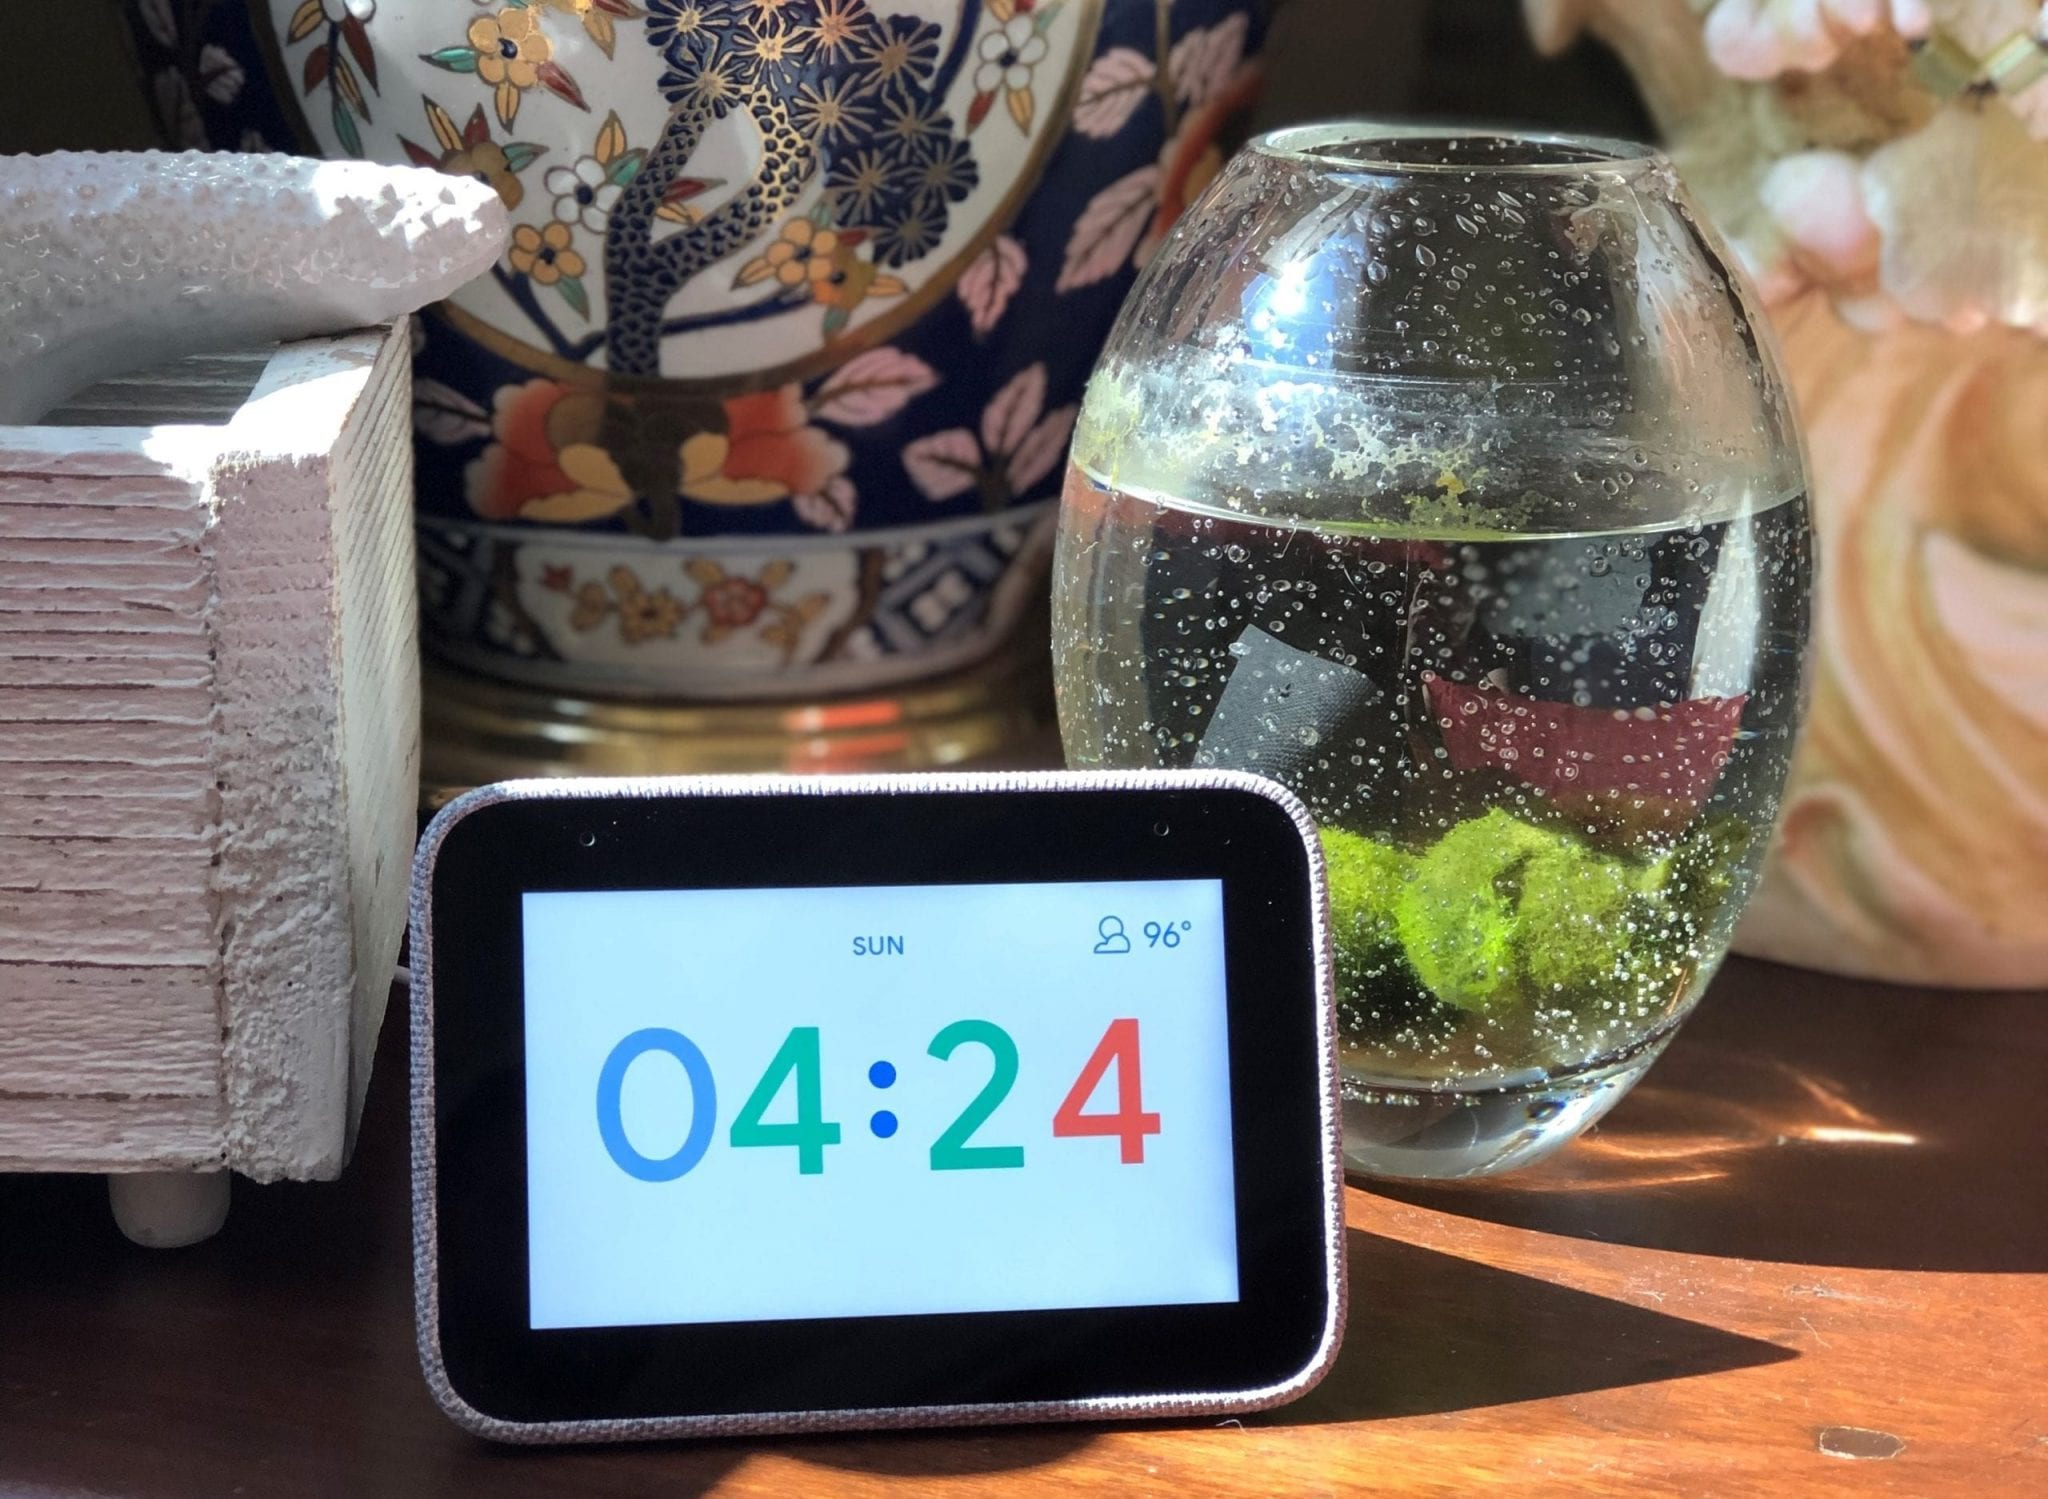 Lenovo Smart Clock spotted in smart home